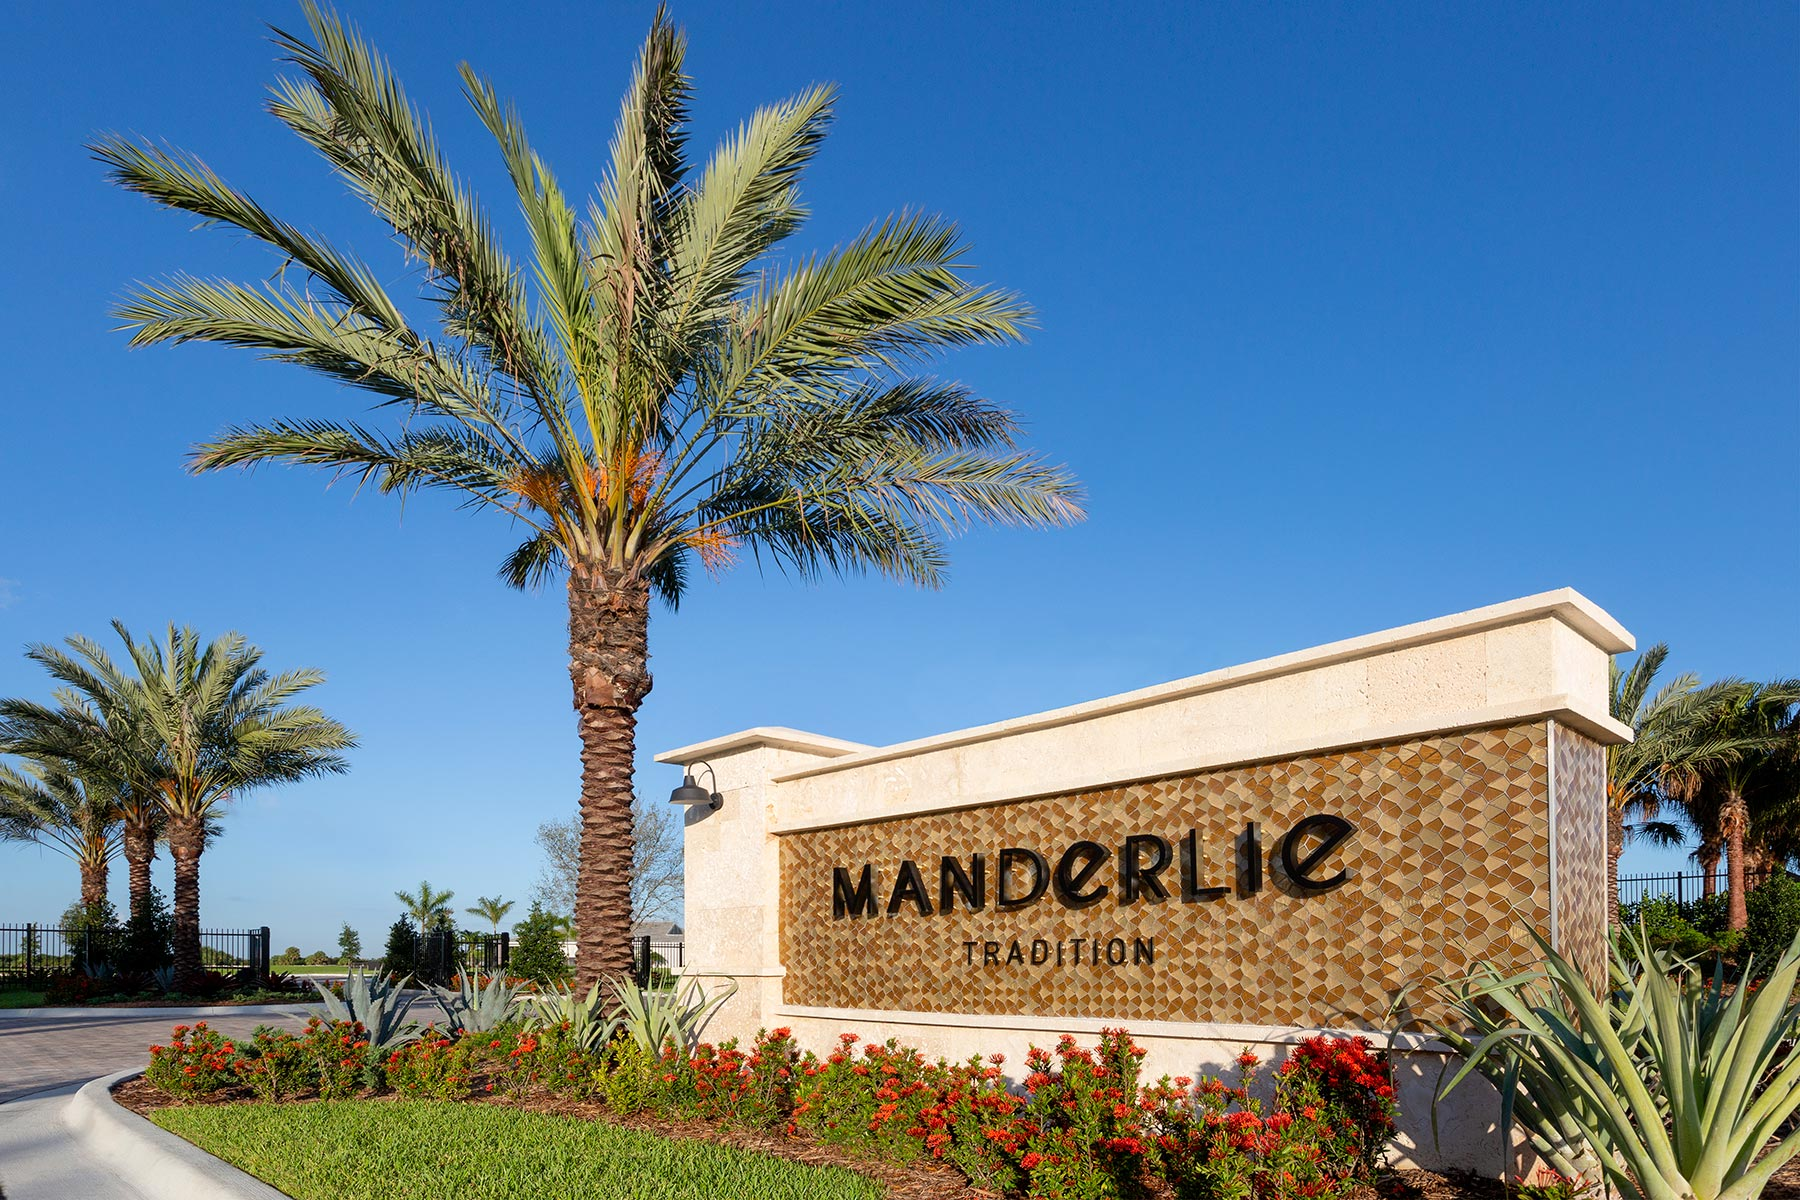 Tradition - Manderlie Monument in Port St. Lucie Florida by Mattamy Homes